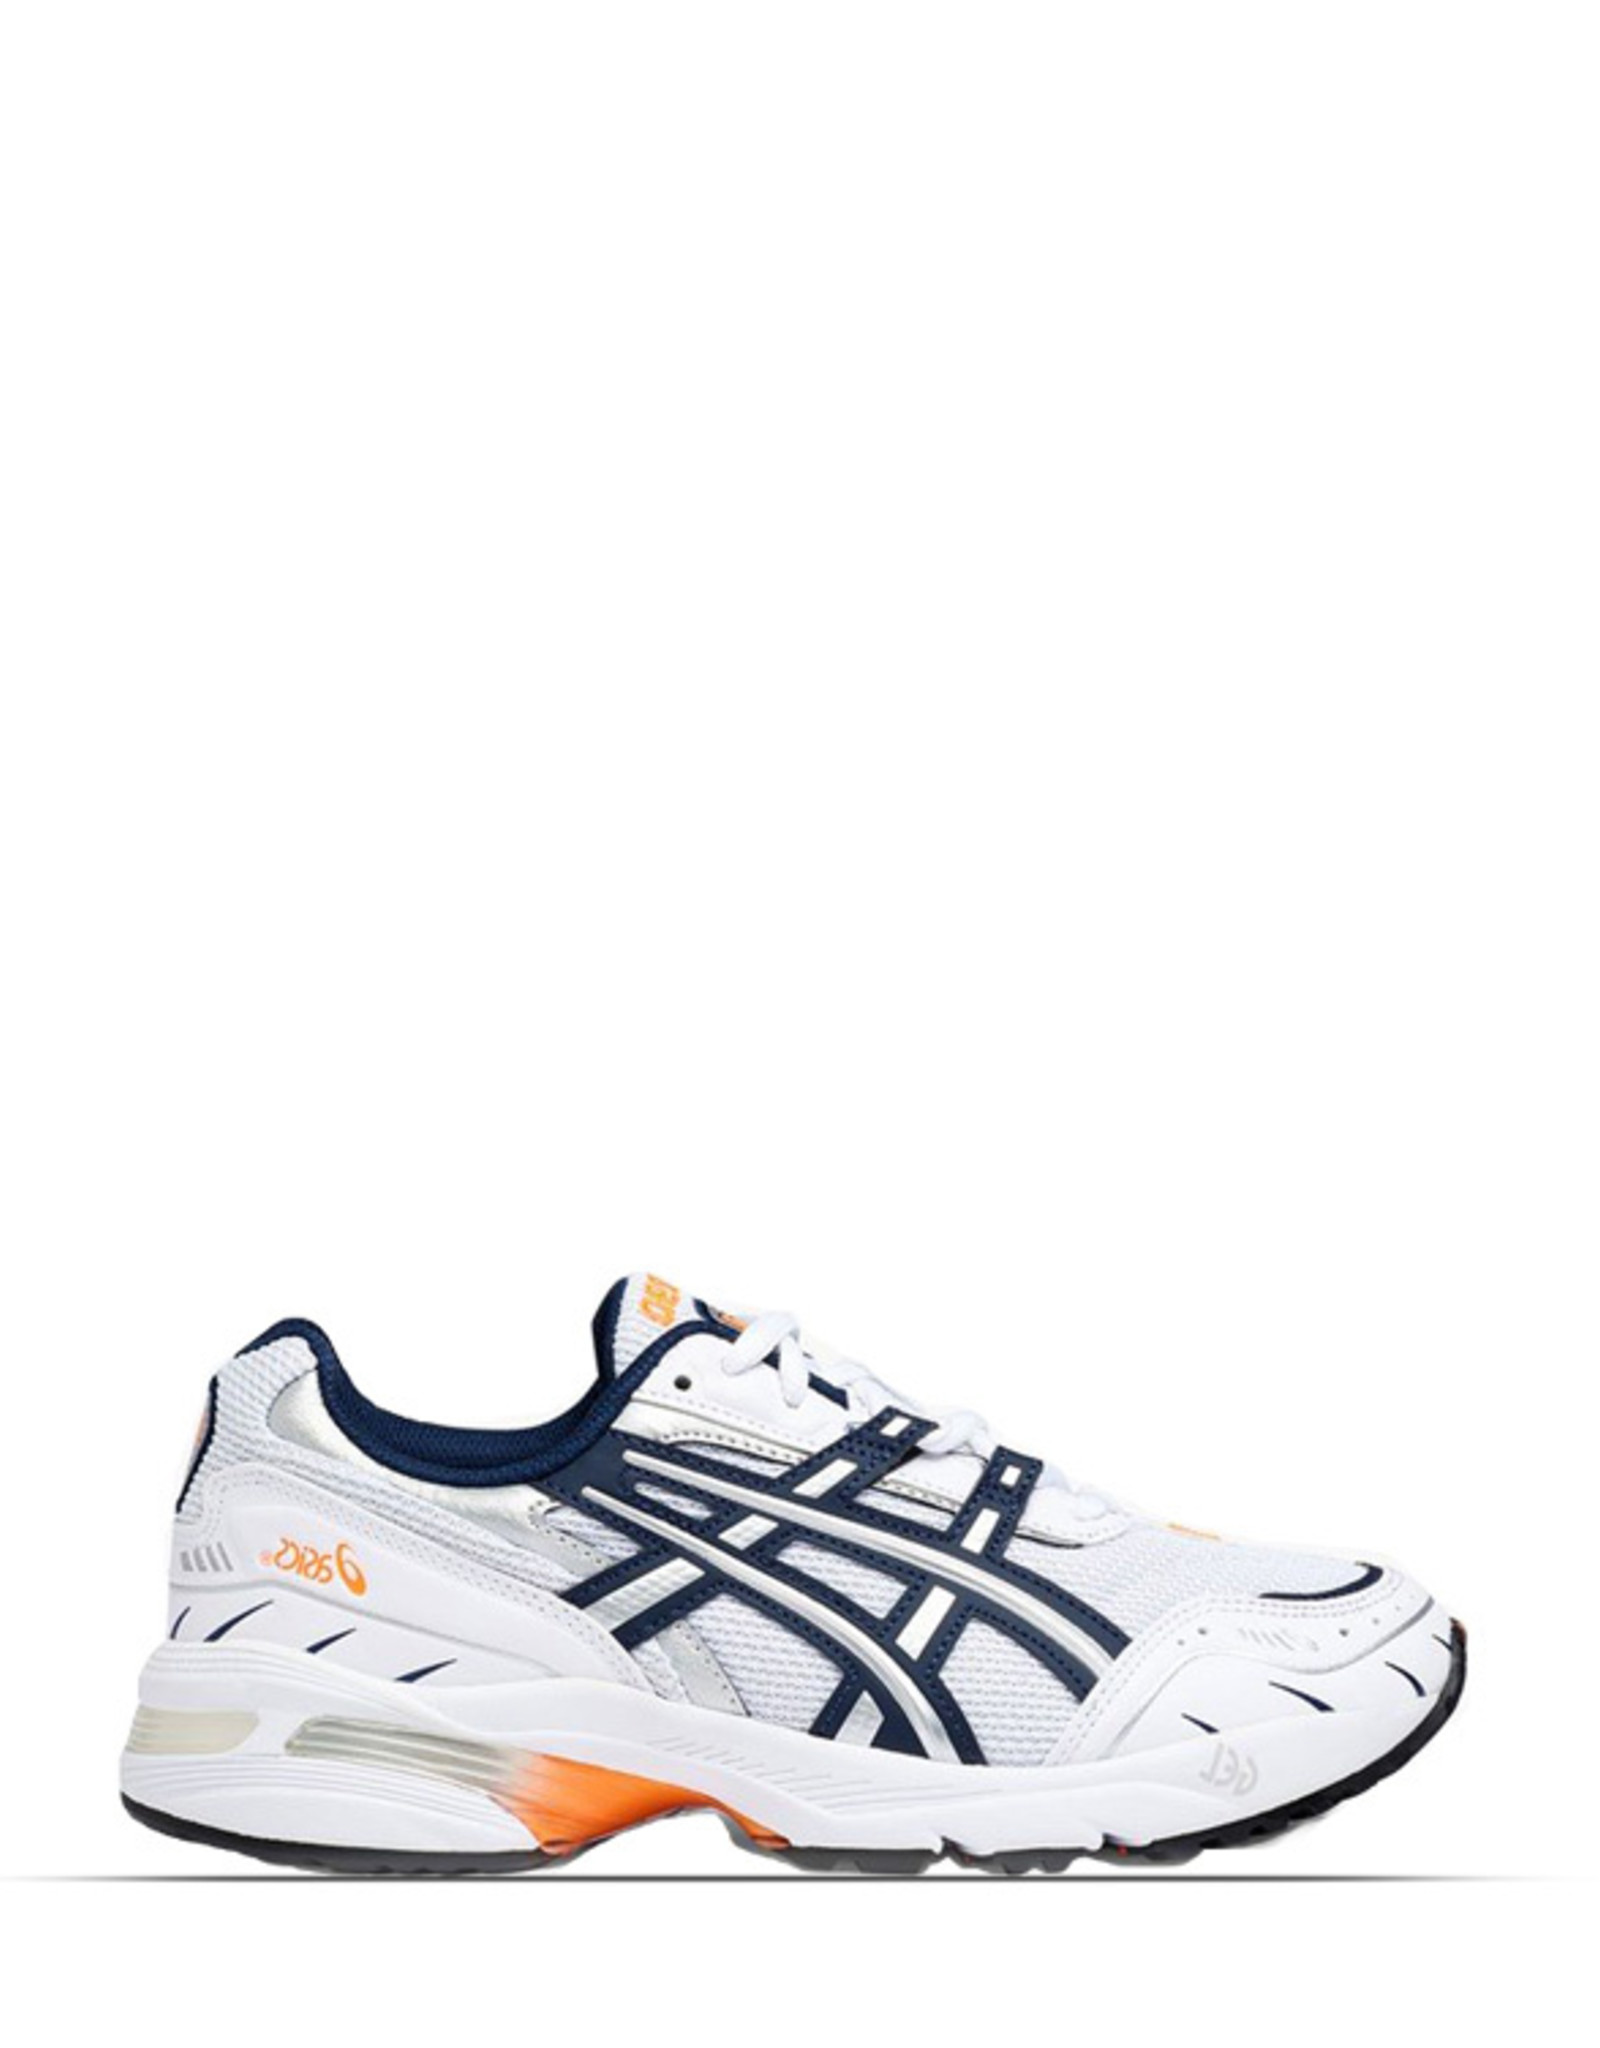 ASICS GEL-1090 - WHITE / MIDNIGHT